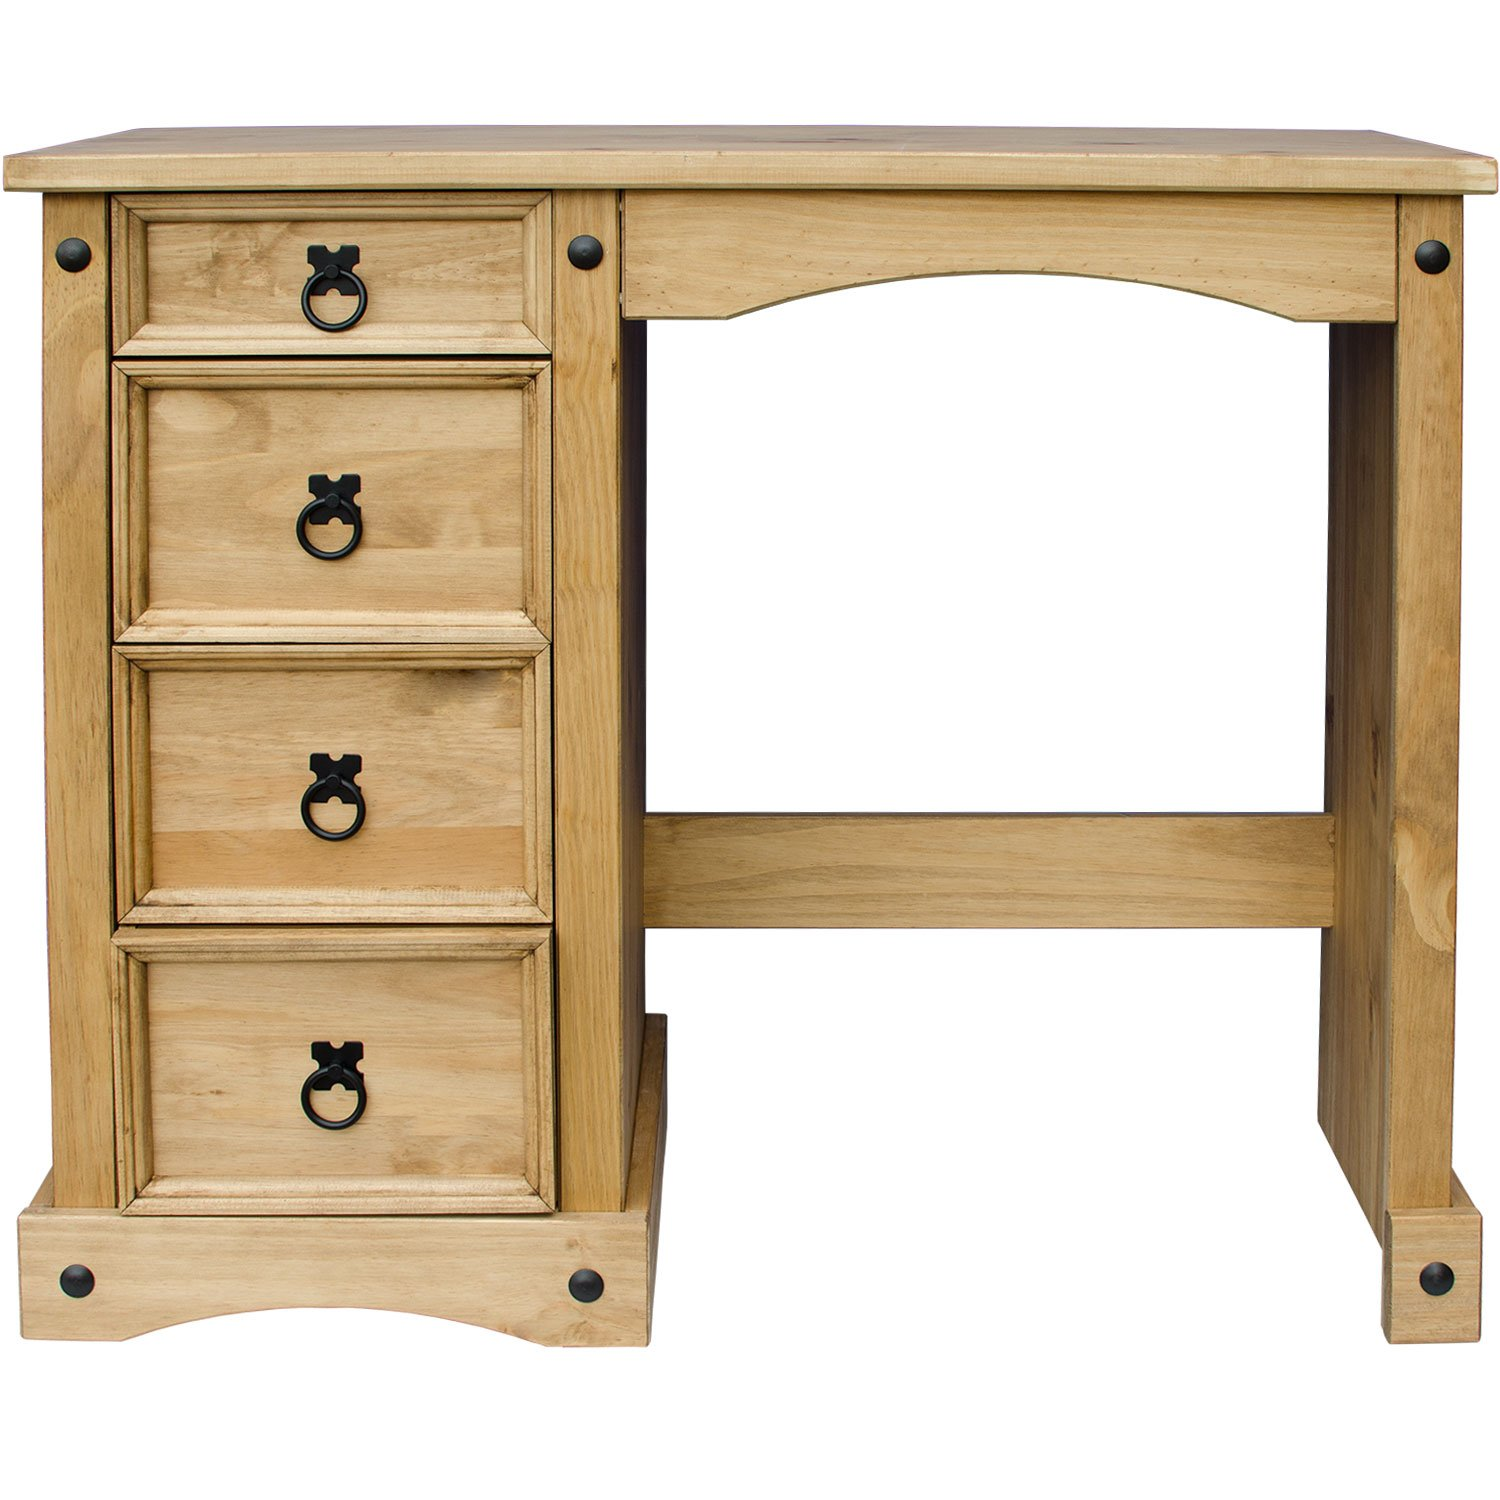 Pine Bedroom Stool Home Discount Corona Dressing Table 4 Drawer Solid Pine Wood